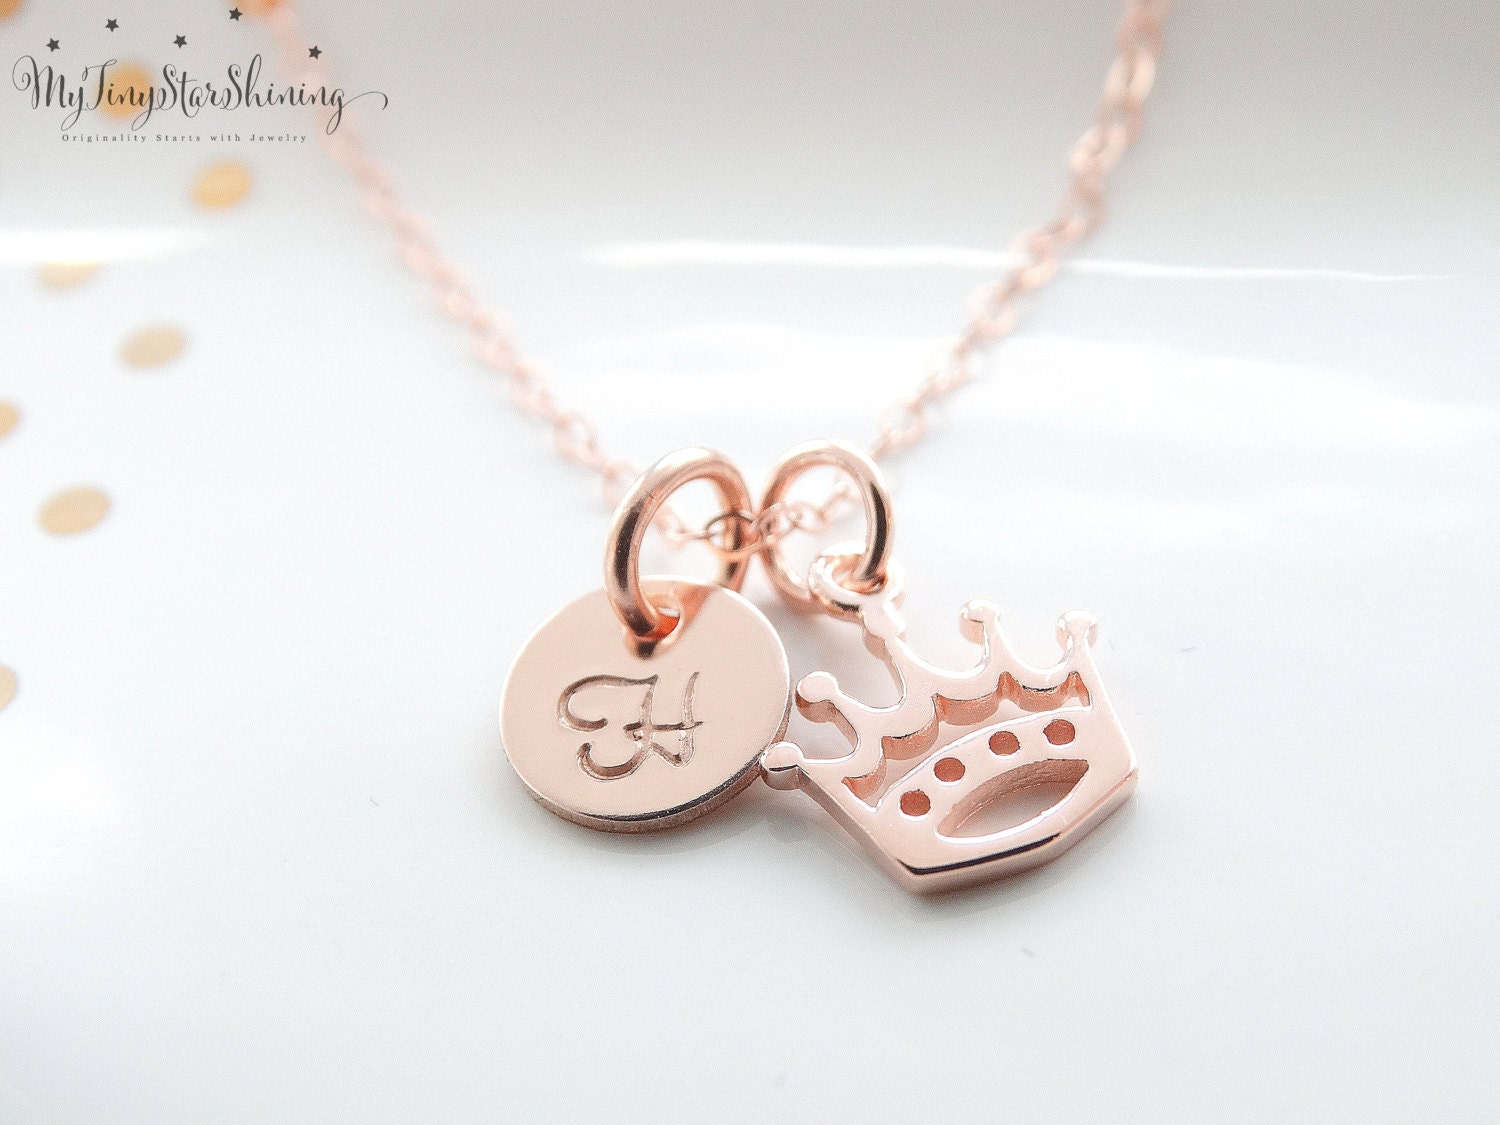 Crown necklace rose gold necklace rose gold initial necklace rose crown necklace rose gold necklace rose gold initial necklace rose gold crown necklace gold initial necklace charm crown charm necklace aloadofball